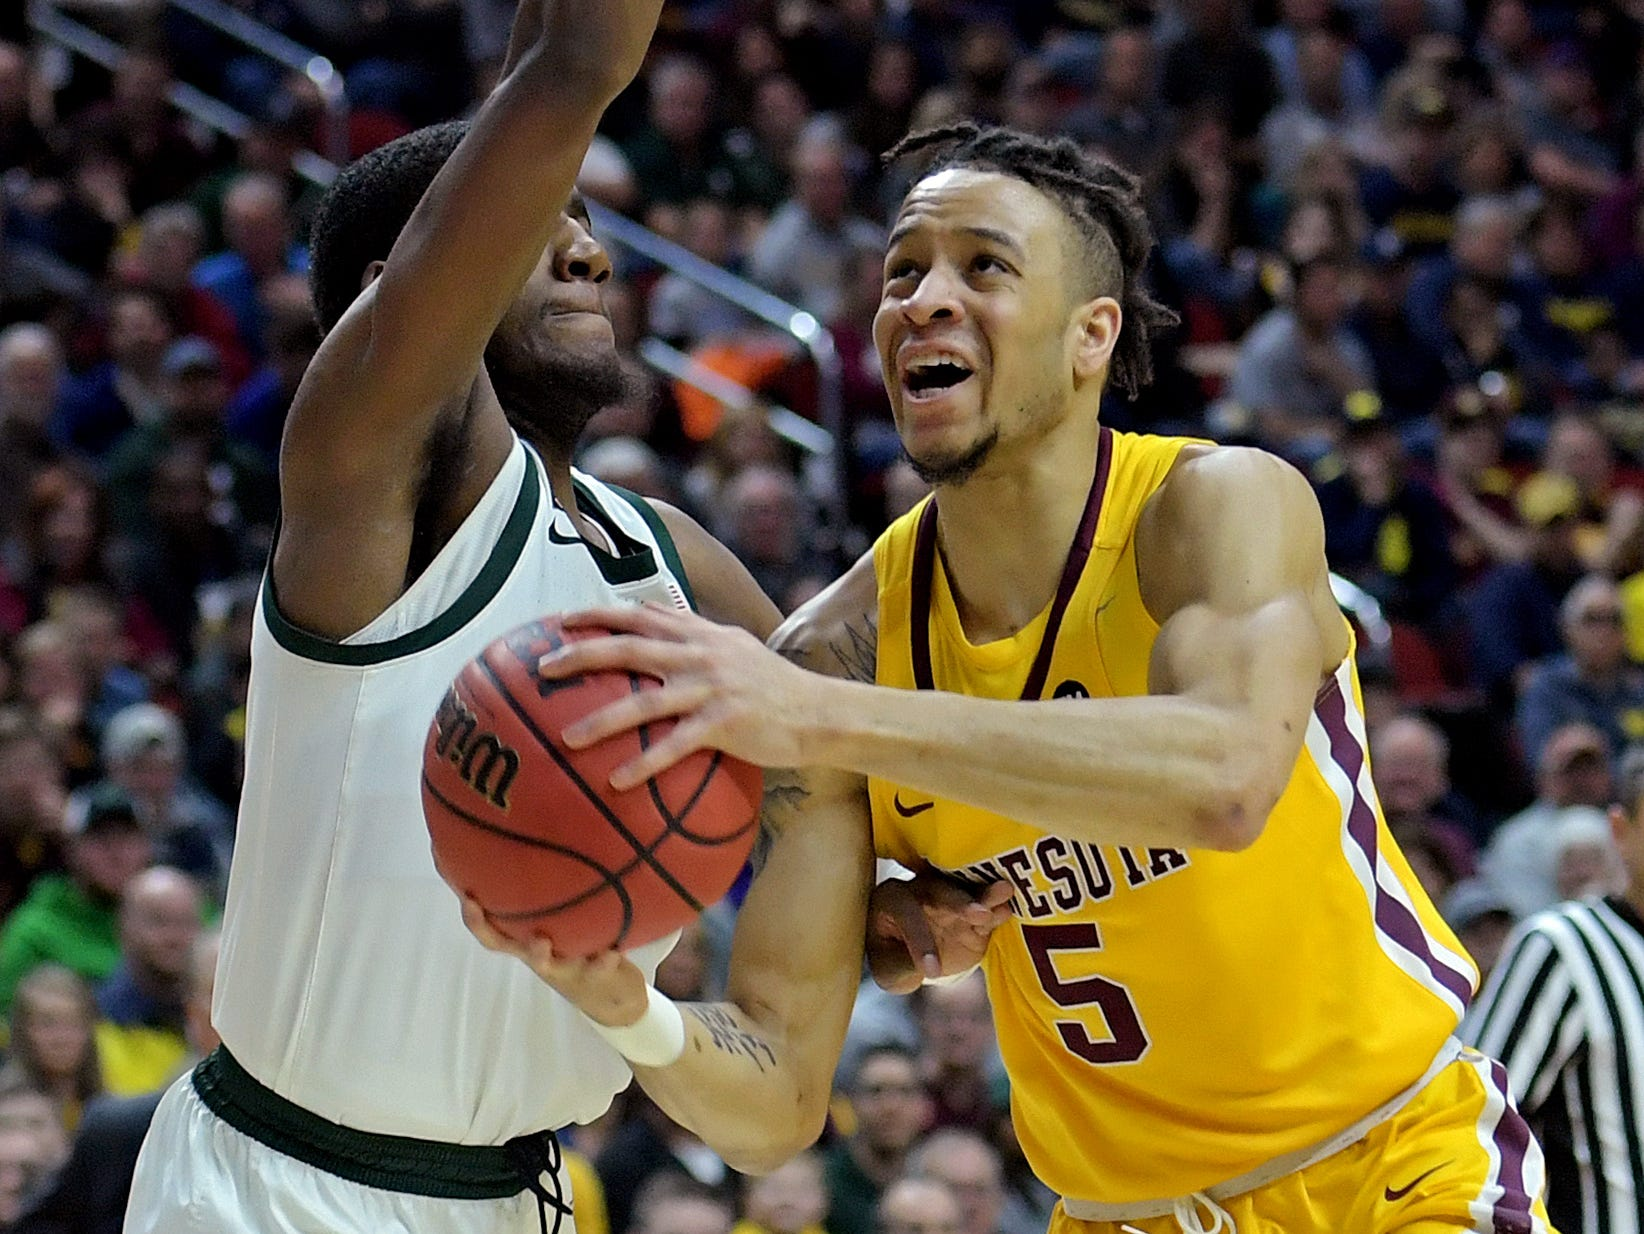 Mar 23, 2019; Des Moines, IA, United States; Minnesota Golden Gophers guard Amir Coffey (5) drives to the basket against Michigan State Spartans forward Aaron Henry (11) during the first half in the second round of the 2019 NCAA Tournament at Wells Fargo Arena. Mandatory Credit: Steven Branscombe-USA TODAY Sports